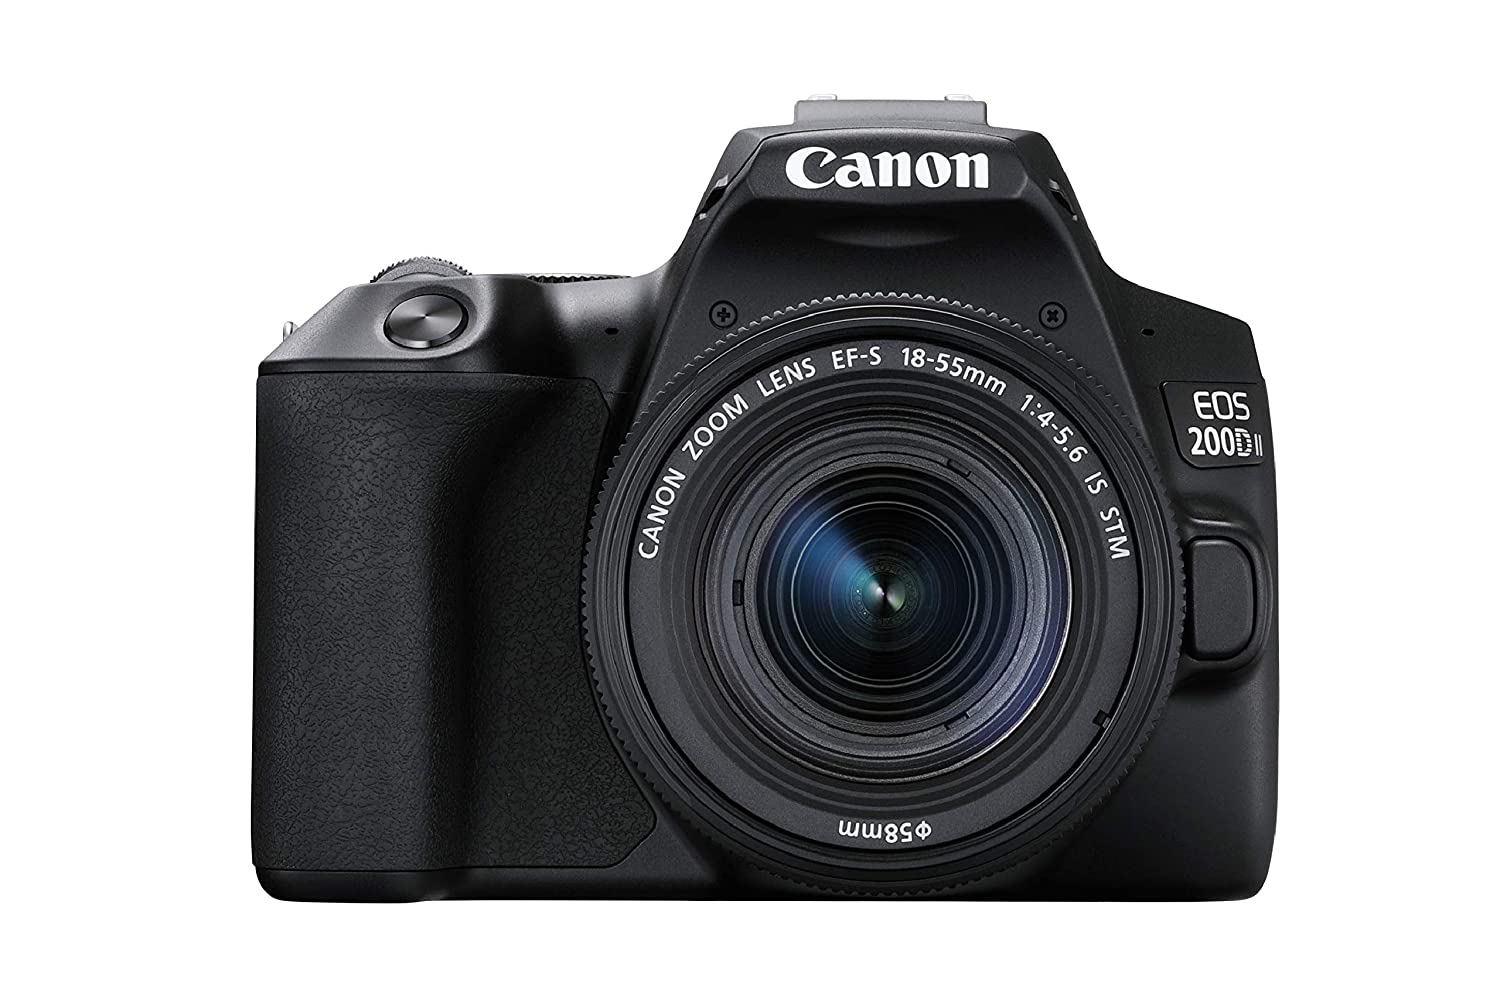 buy canon 200d at lowest price, reviews, specification